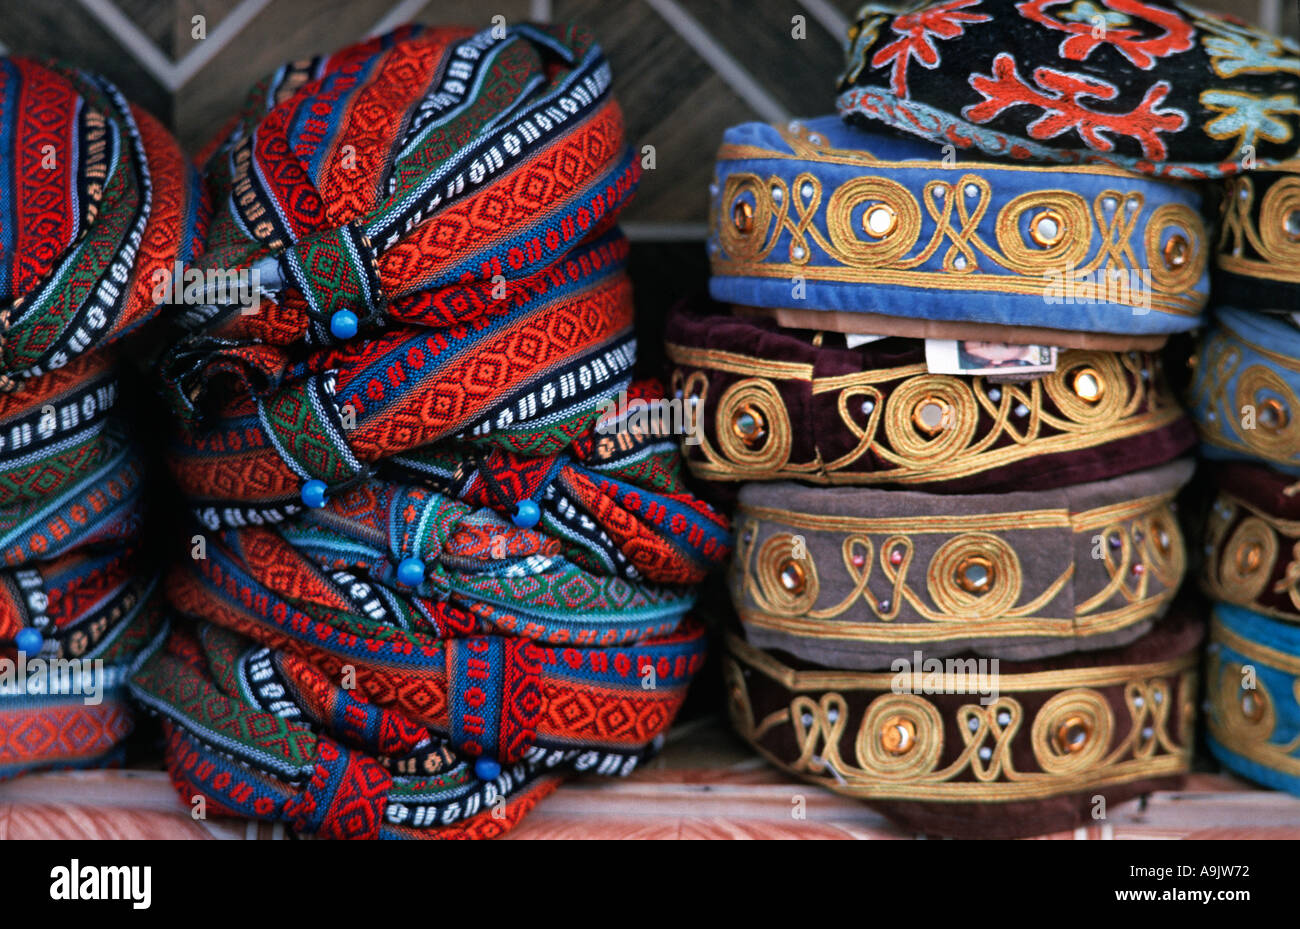 Detail of stacks of woven hats for sale at souvenir market in the Zelve valley Cappadocia Turkey - Stock Image